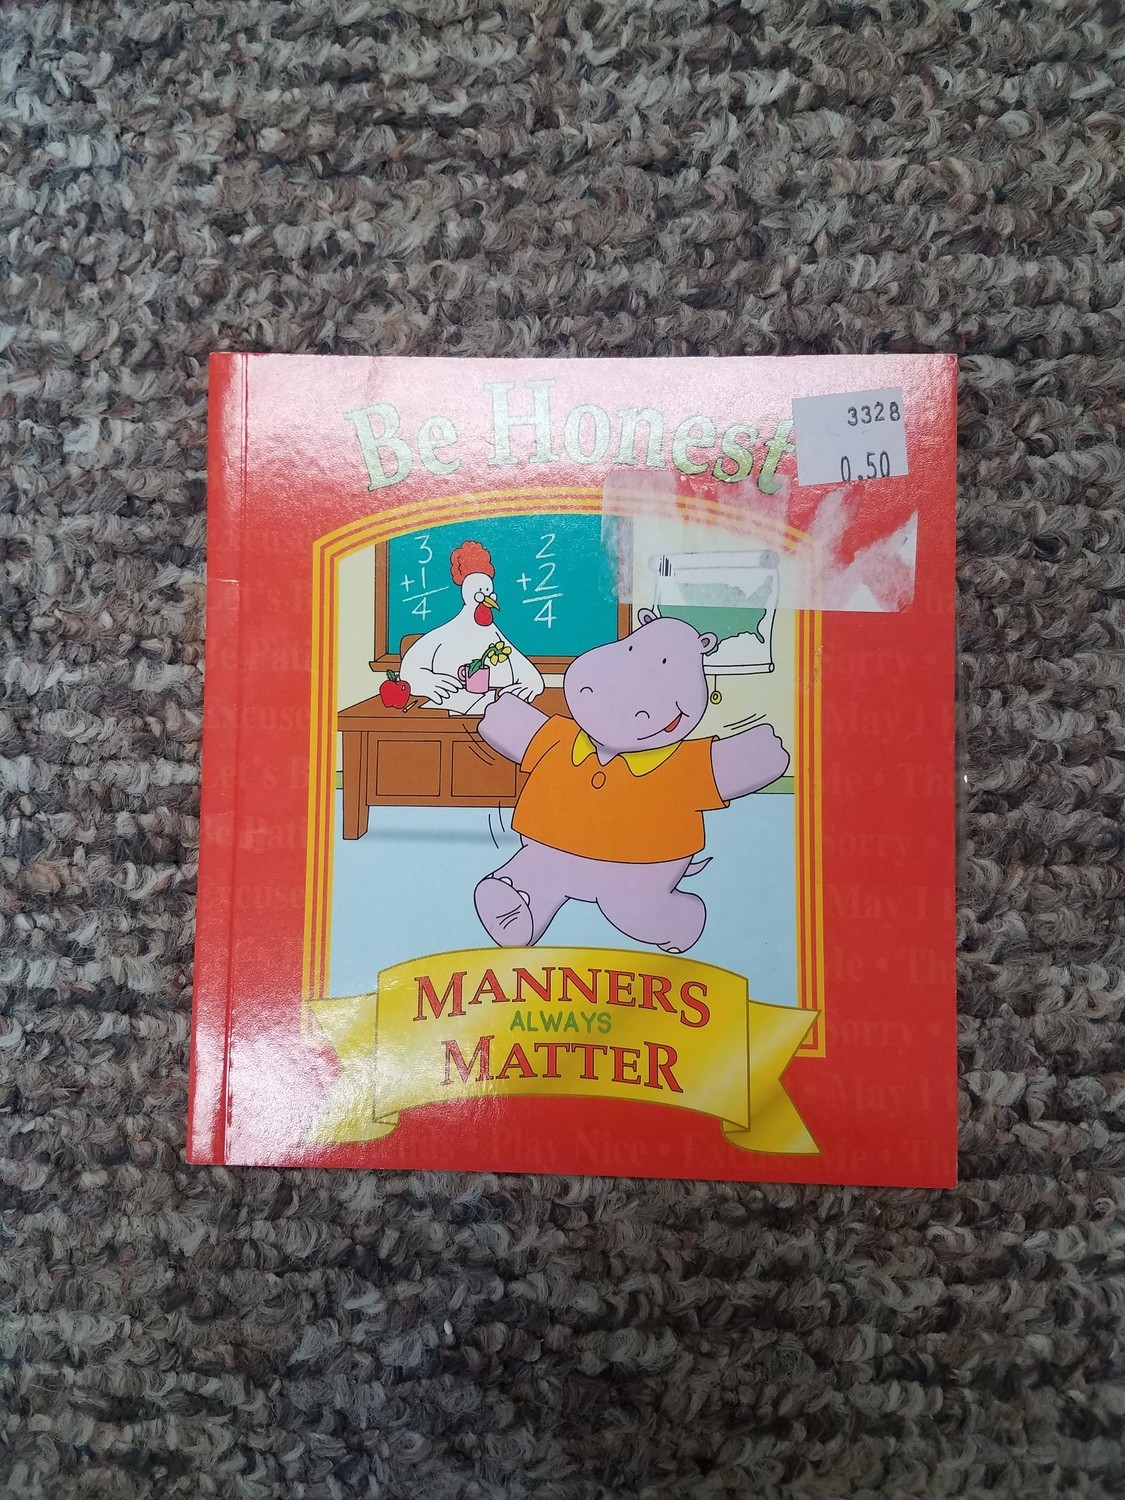 Be Honest: Manners Always Matter by Jason Blundy